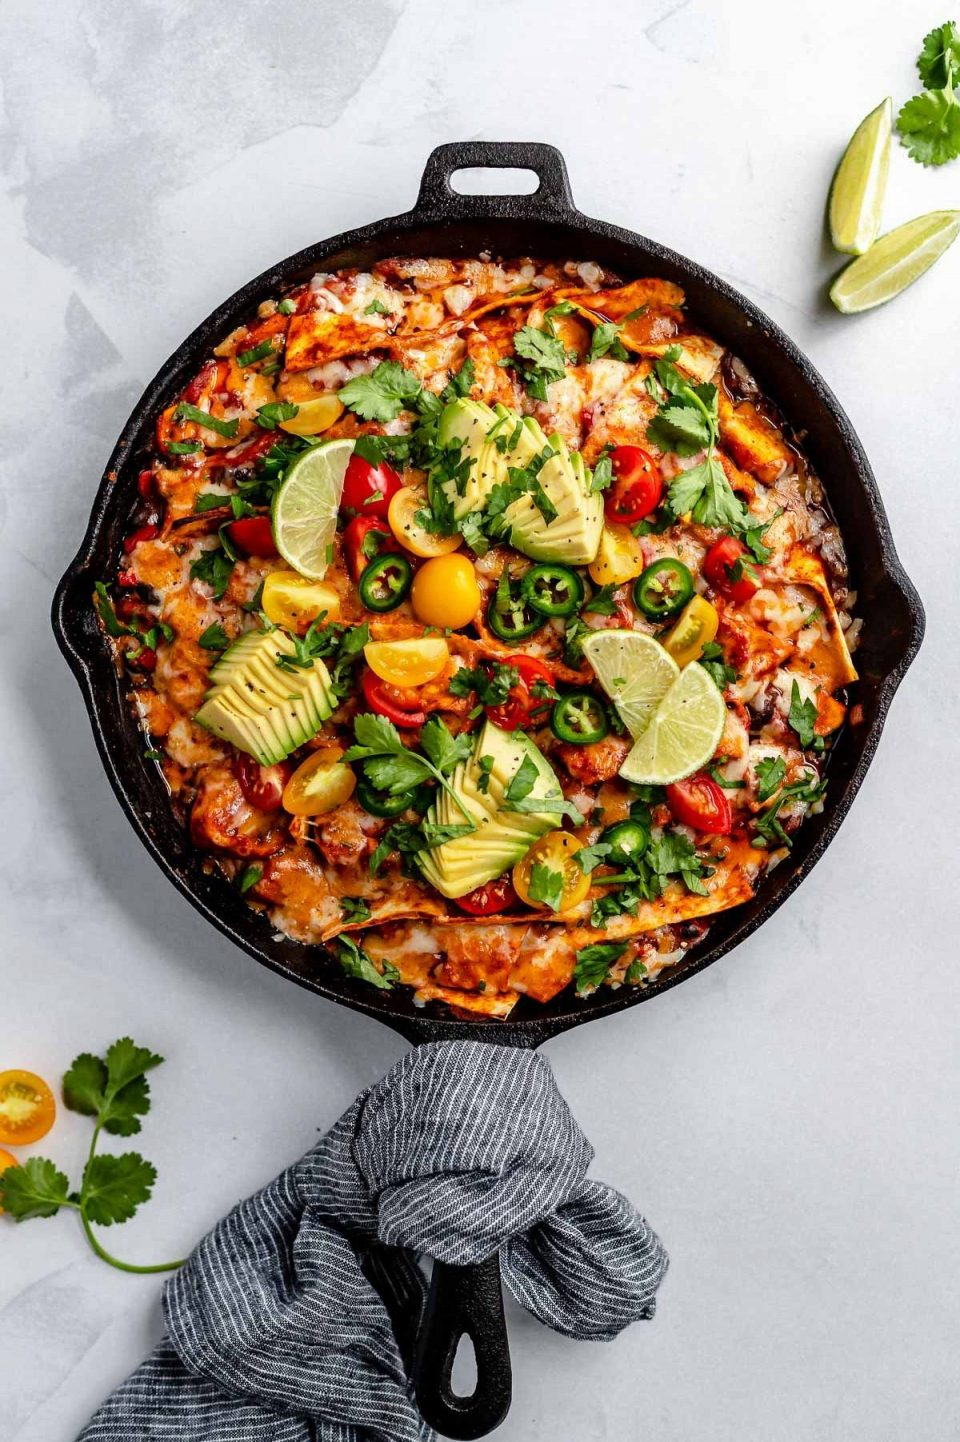 Vegetarian skillet enchiladas, shown in a large black skillet, topped with melted cheese, cherry tomatoes, sliced avocado, roughly chopped cilantro, thinly sliced jalapeno pepper. The skillet sits atop a light blue surface, with its handle wrapped in a black & white linen napkin. Next to the skillet, on the surface, are cilantro leaves & lime wedges for serving.